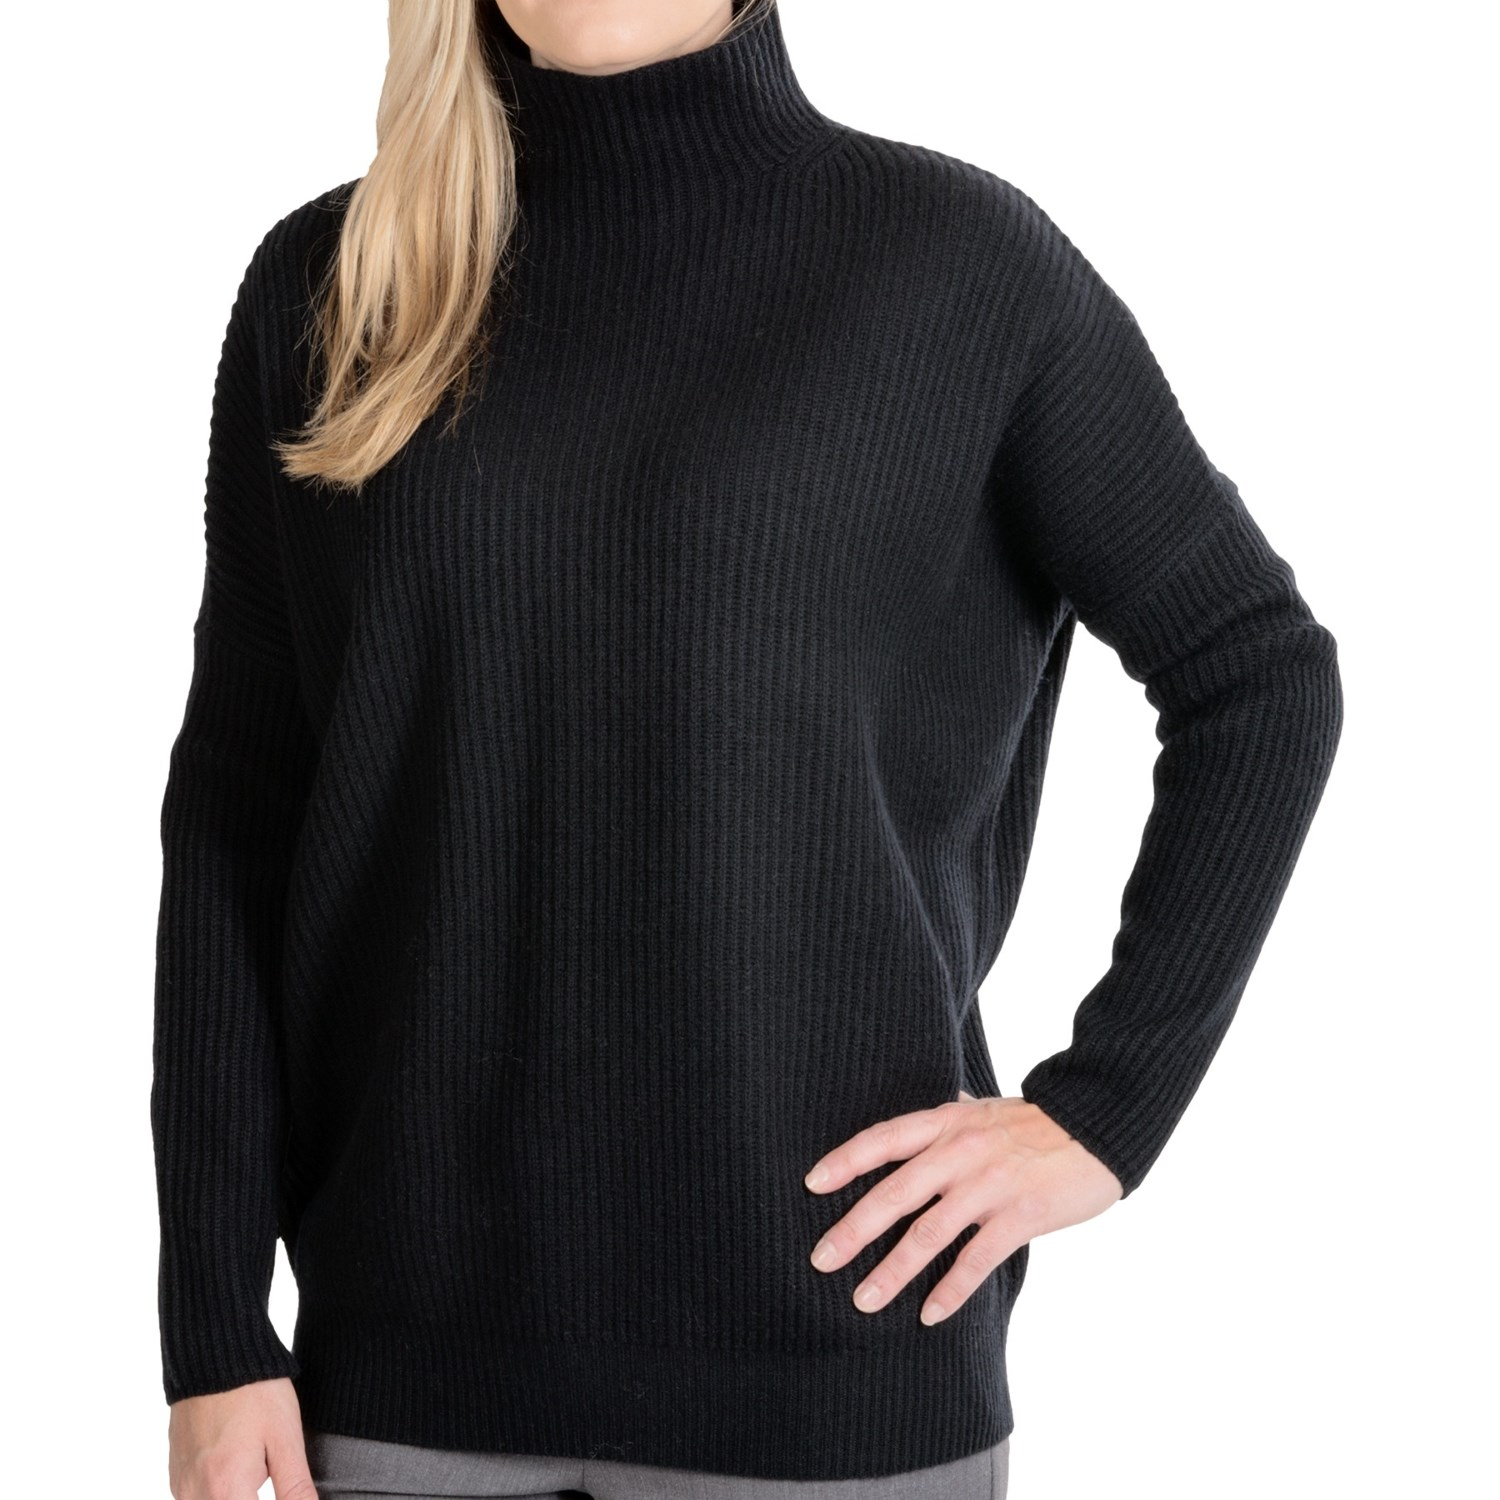 Black Cashmere Turtle Neck Sweater 11